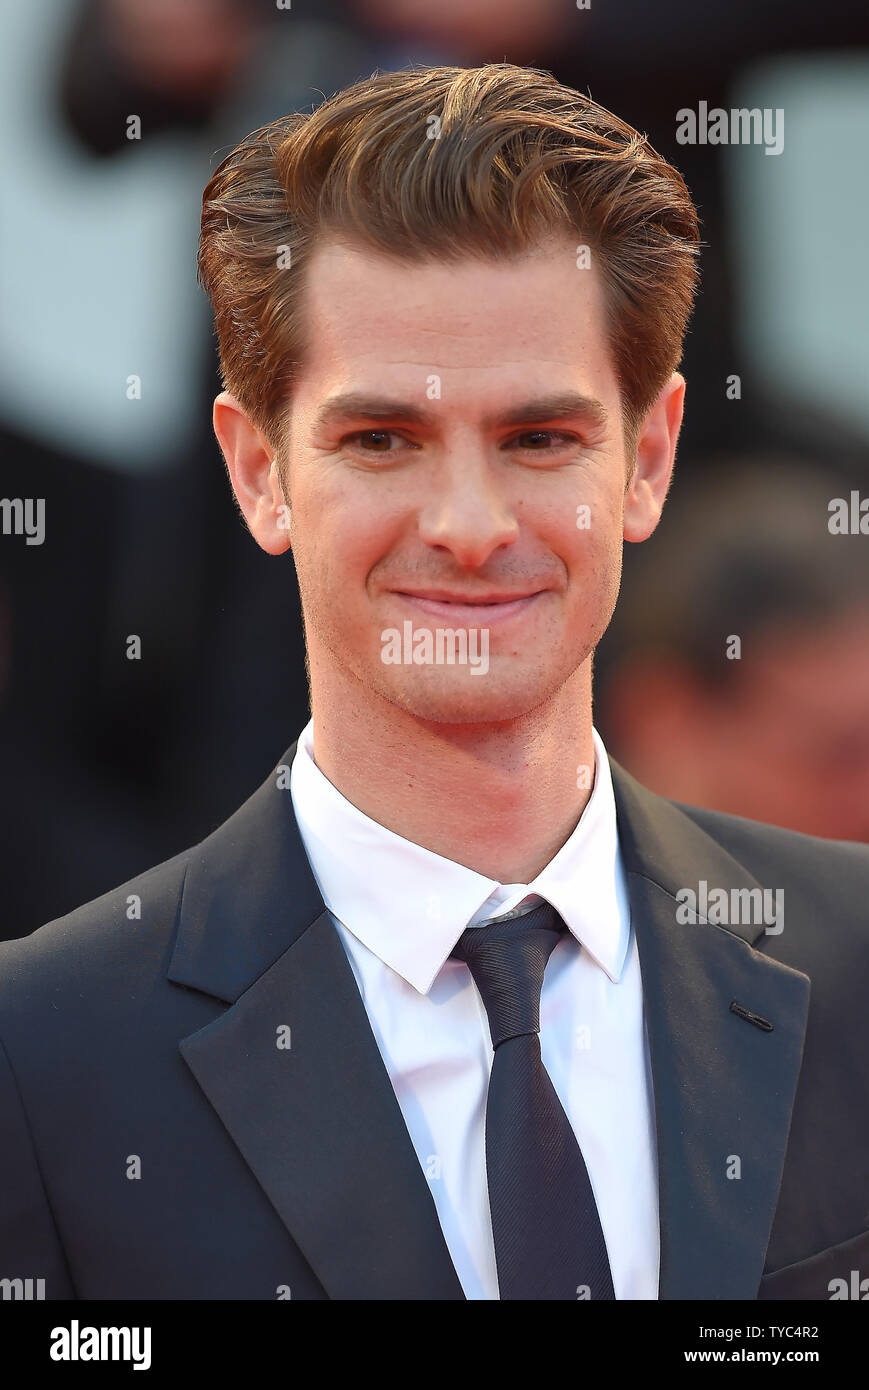 English Actor Andrew Garfield Attends The Premiere For Hacksaw Ridge During The 73rd Venice Film Festival In Venice On September 4 2016 Photo By Paul Treadway Upi Stock Photo Alamy